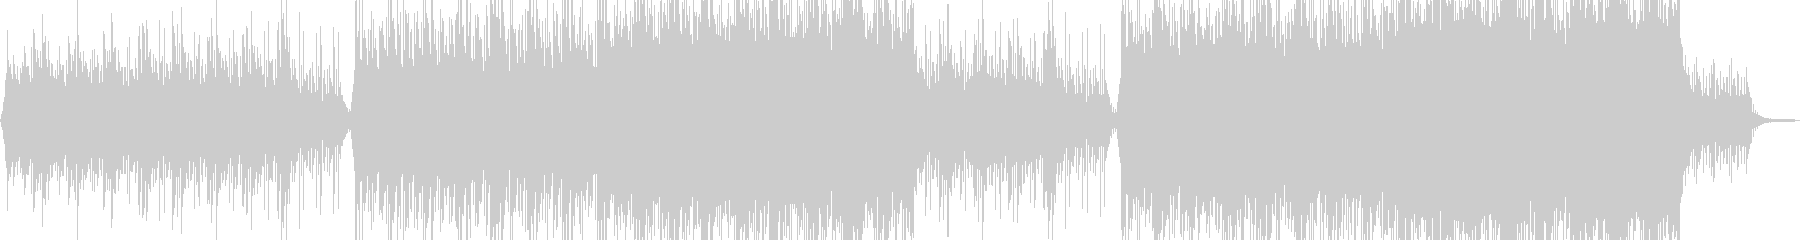 Corporate BGM with a magnificent image's unreproduced waveform